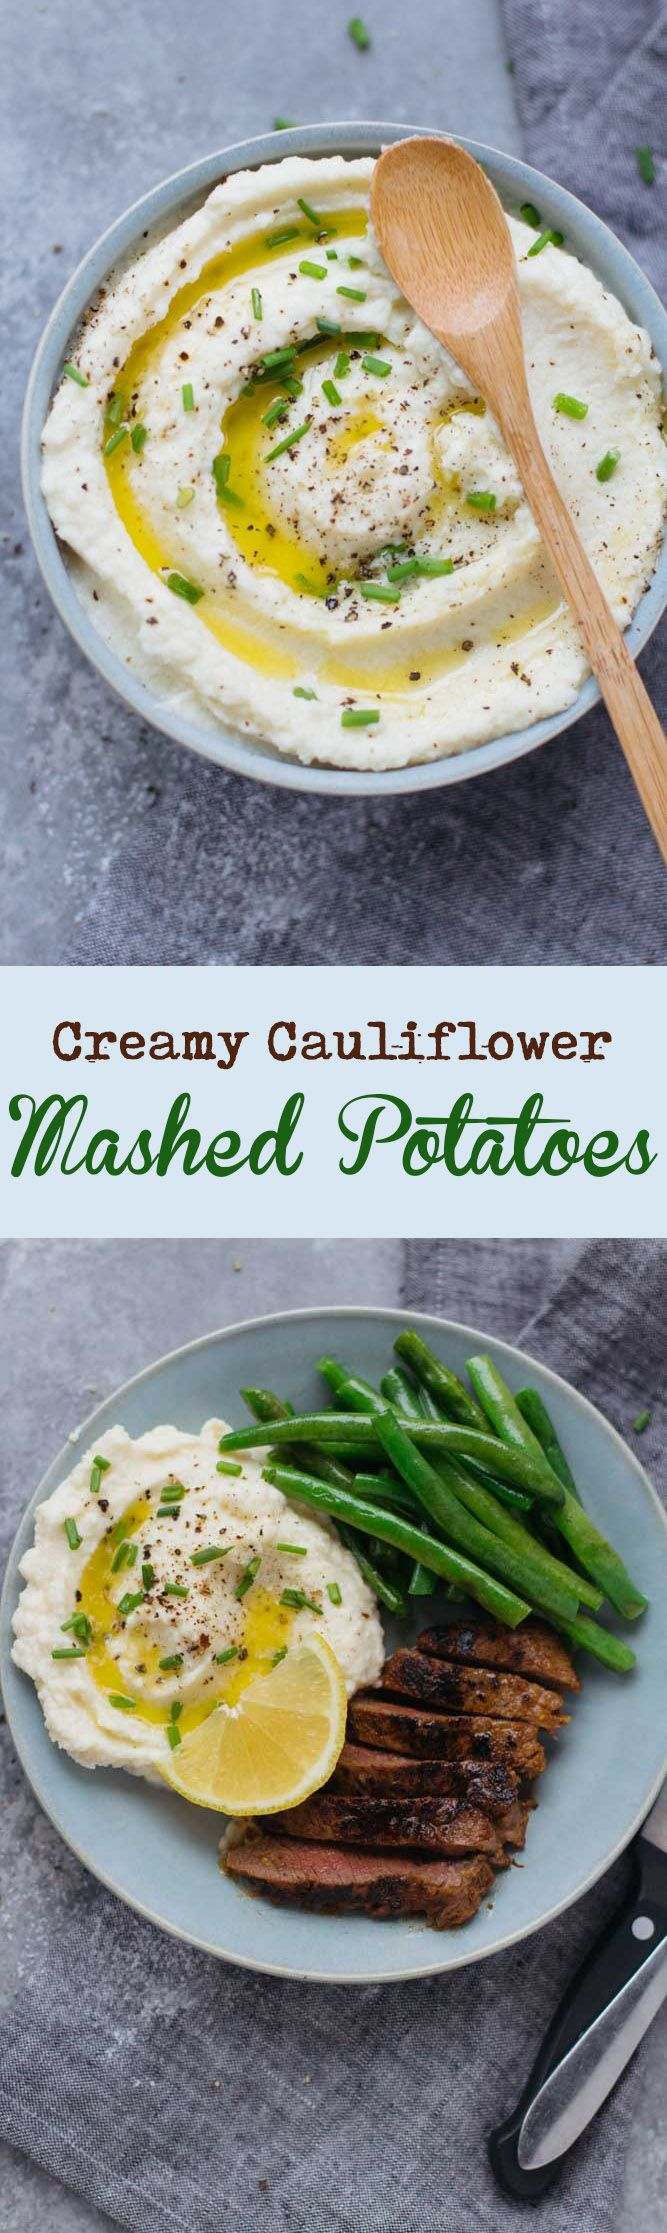 "These Creamy Cauliflower Mashed ""Potatoes"" are super fluffy and tasty - make them as a healthy alternative to traditional mashed potatoes with less carbs!"